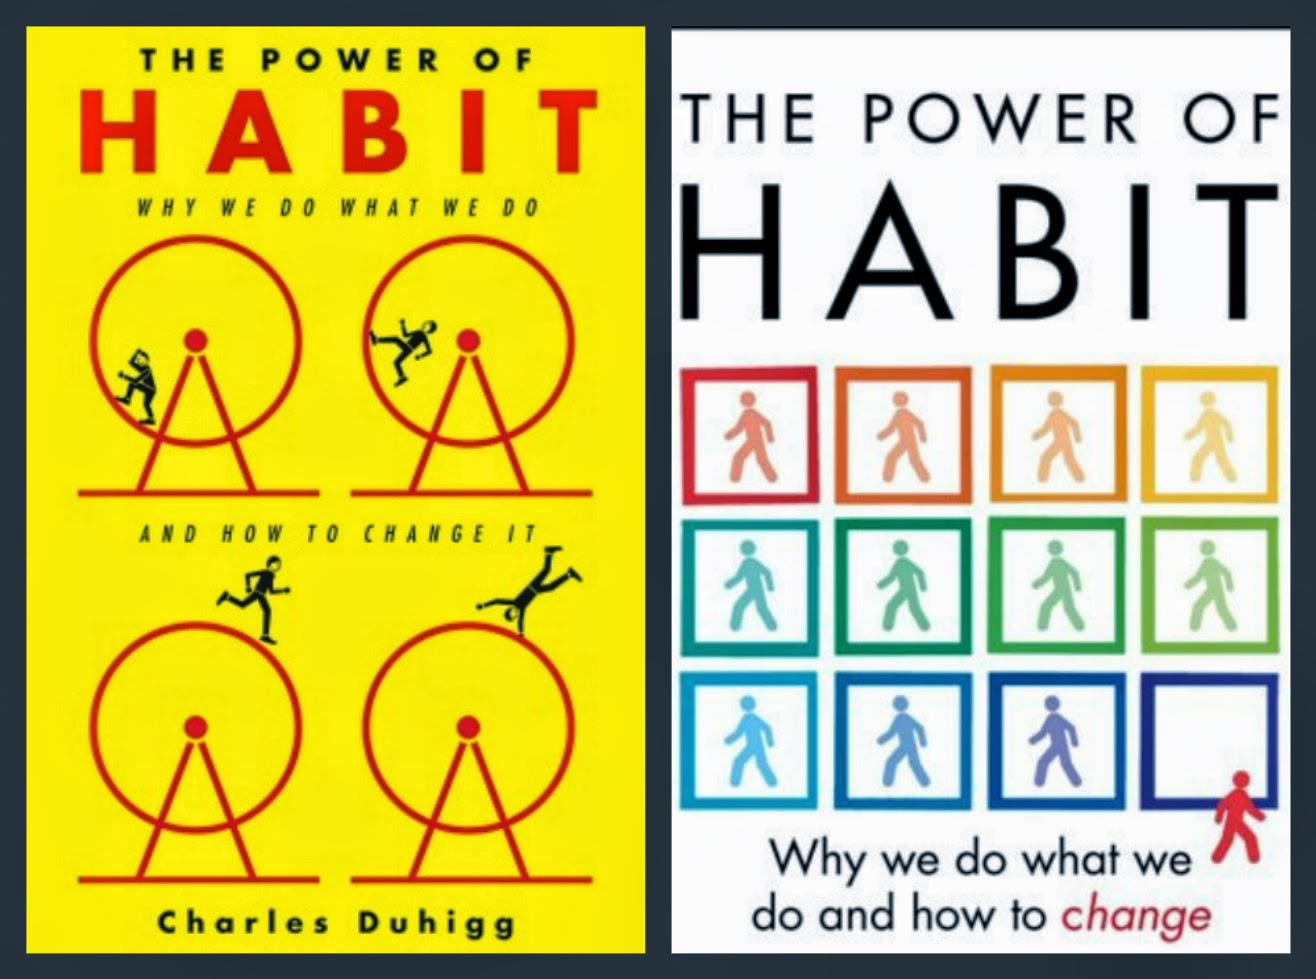 Power of Habit Charles Duhigg